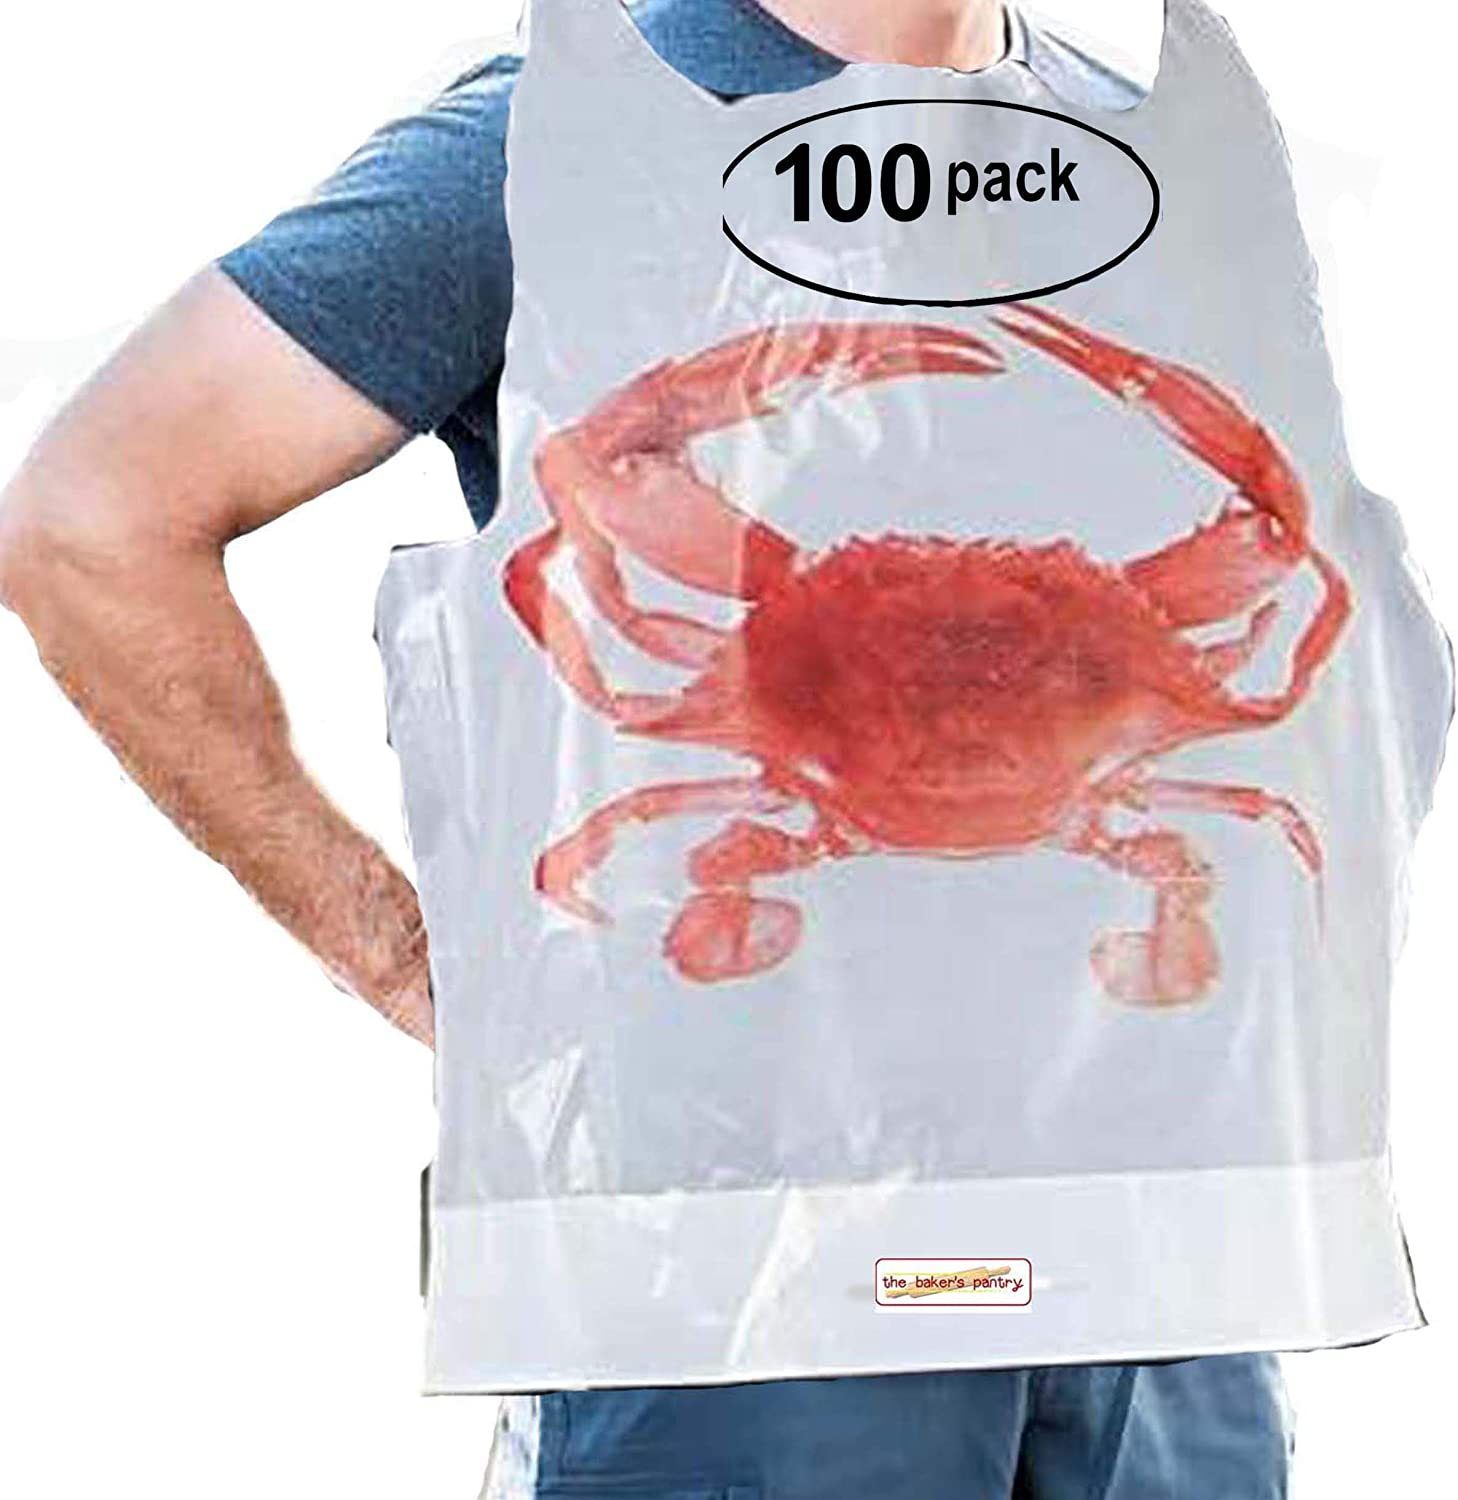 100 Pack Disposable Plastic Lobster Bibs Crawfish Bibs - Adult Disposable Bibs Protect Clothes from Spills, Great for restaurants, seafood or crawfish Party Supply Lobster Bibs